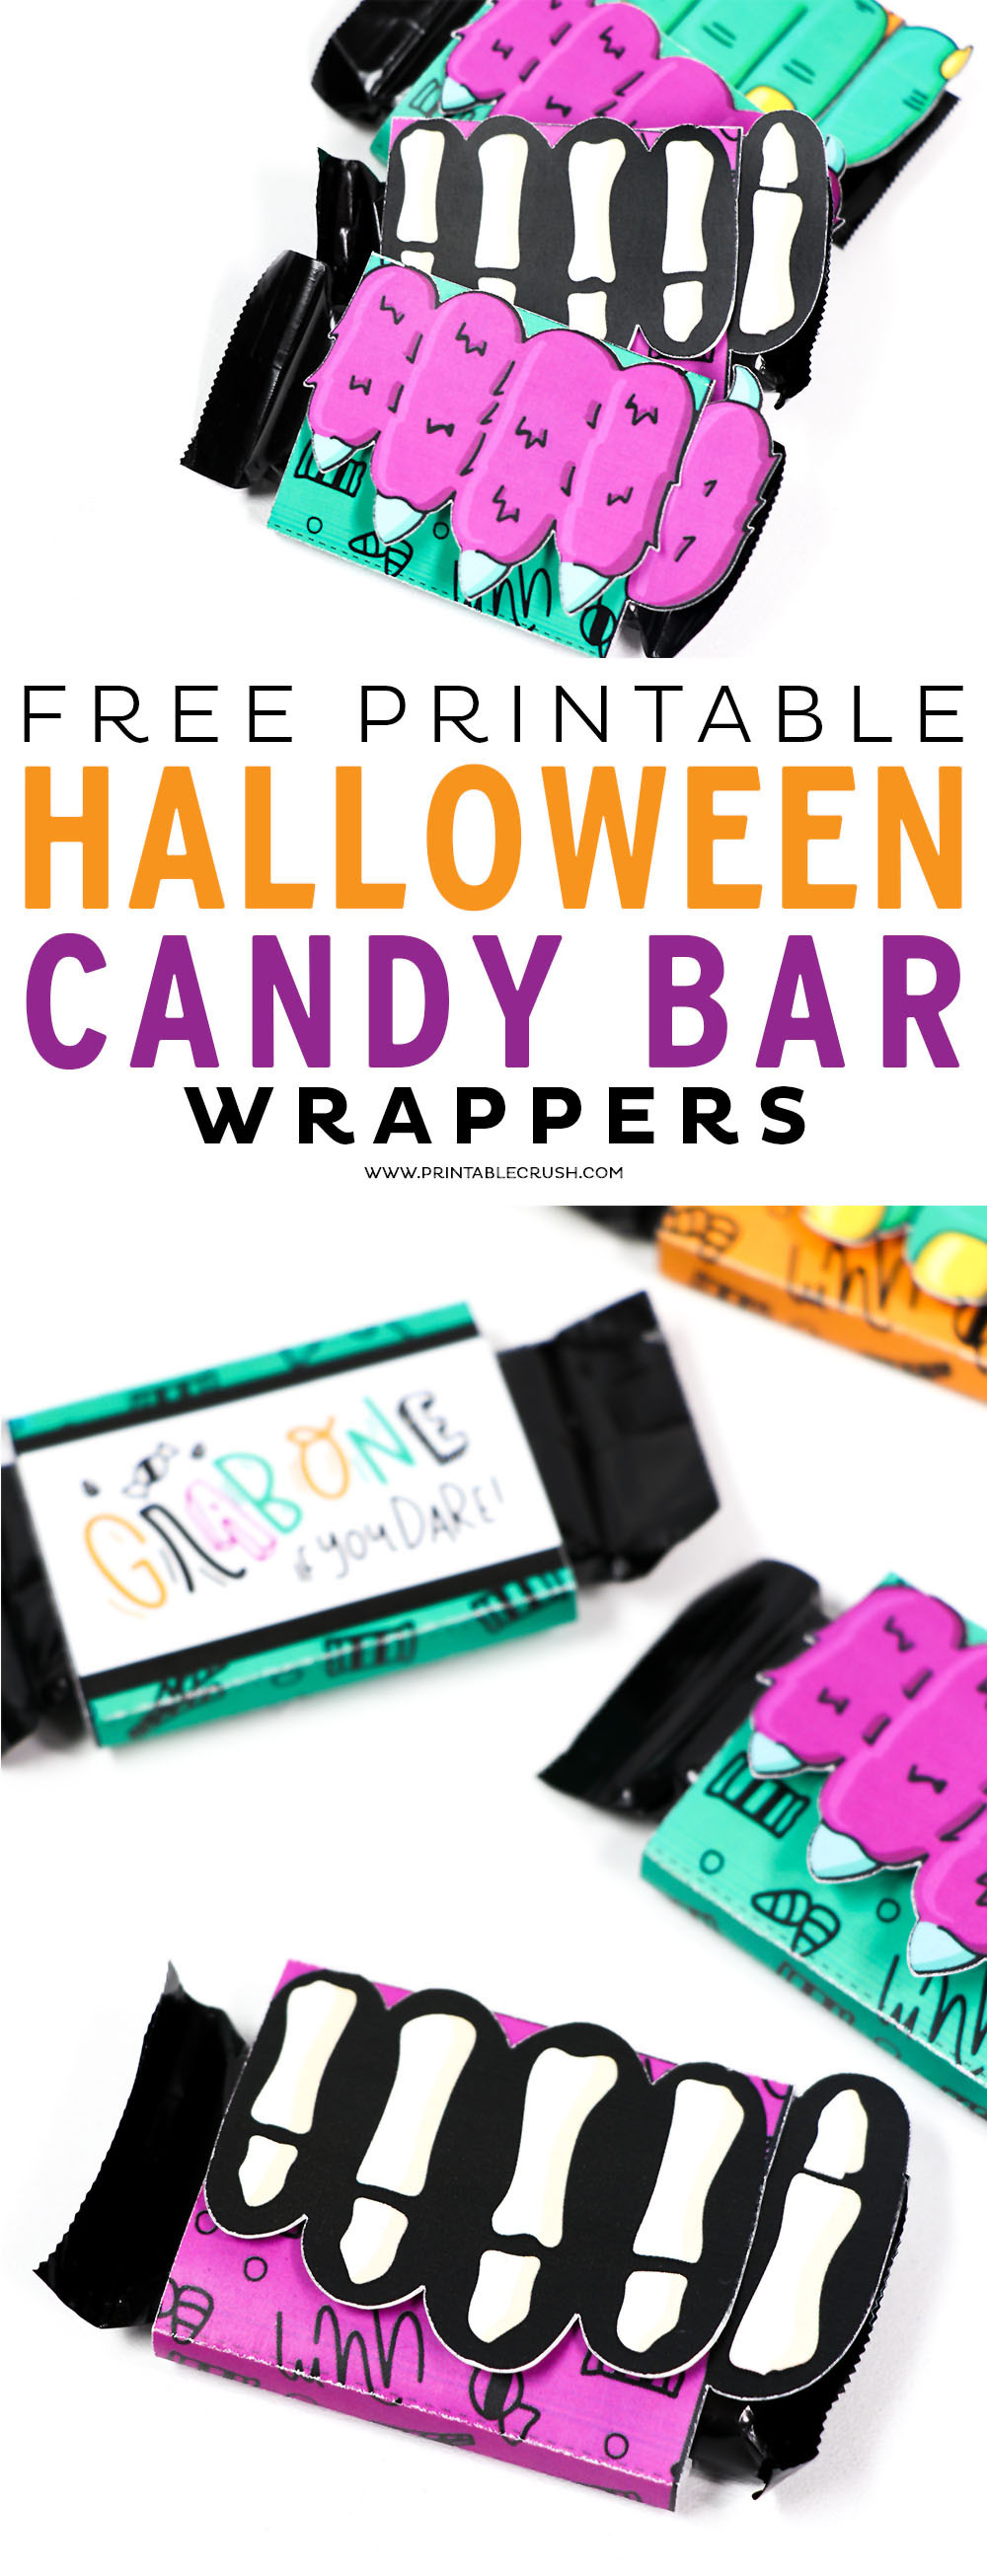 These Free Printable Halloween Candy Bar Wrappers are adorable and perfect for trick or treaters or Halloween party favors!